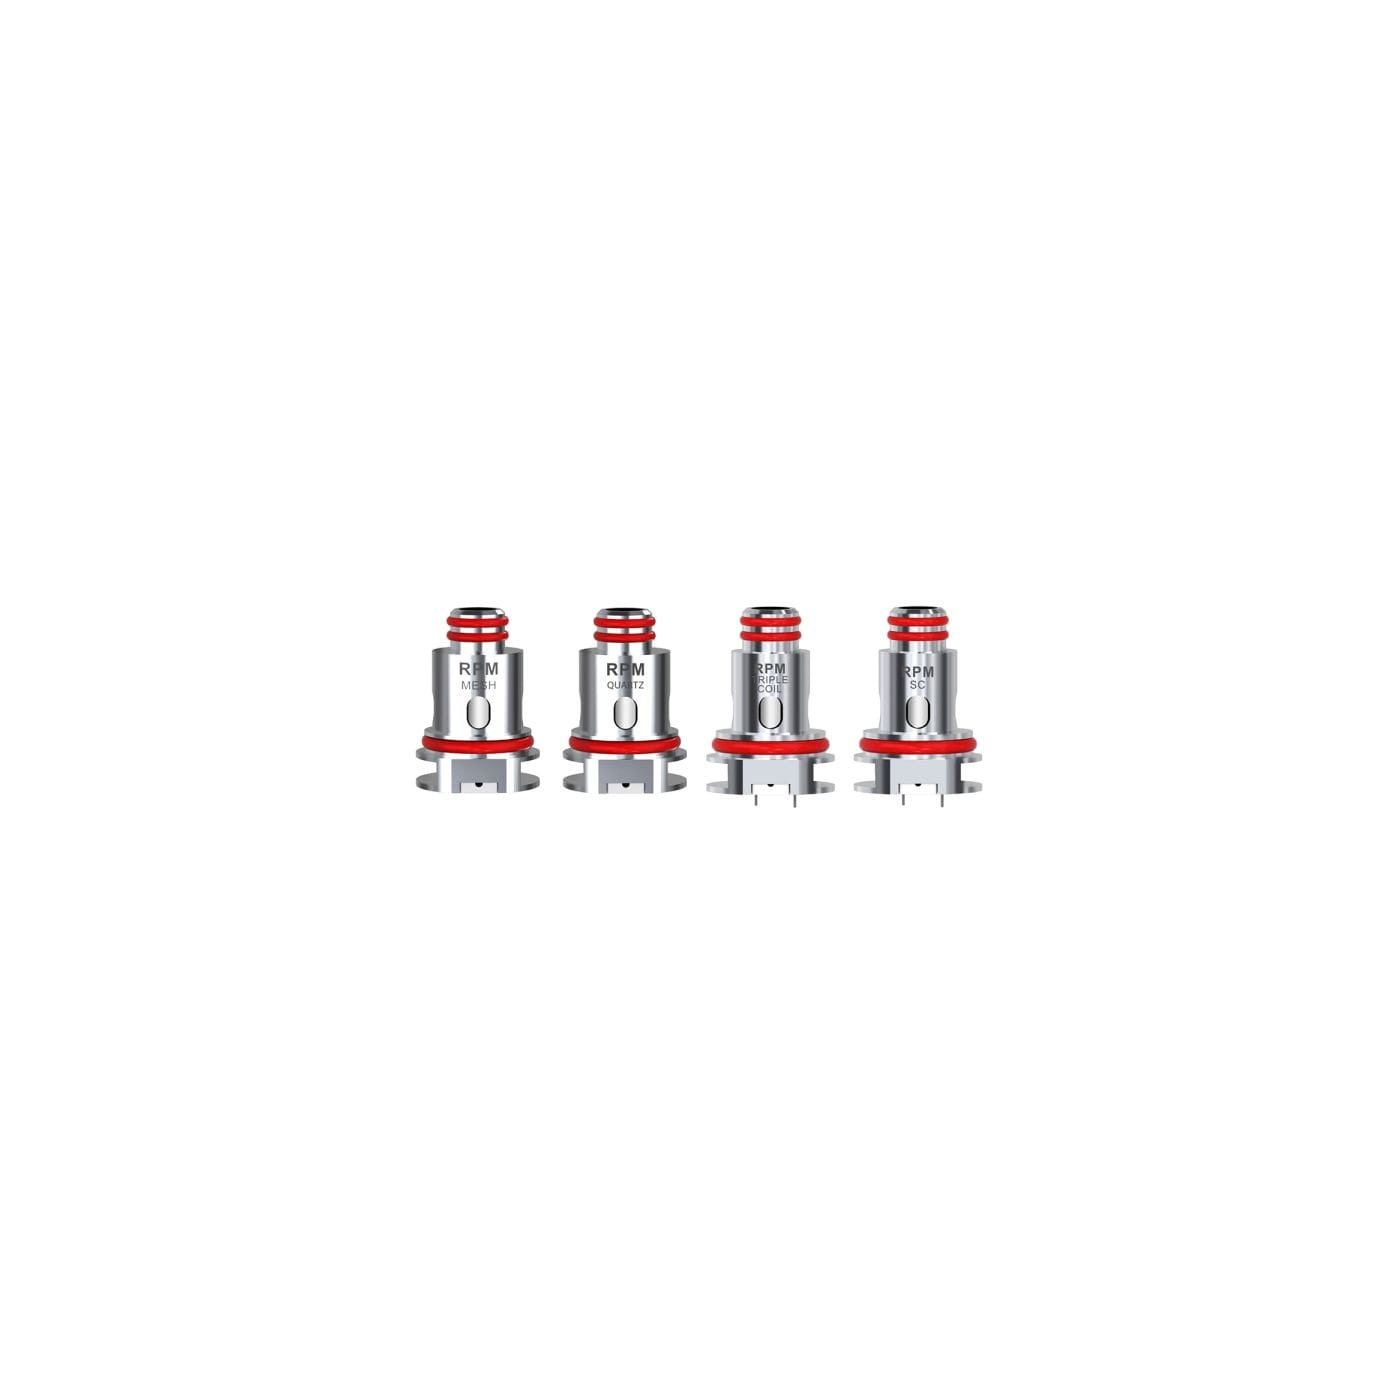 Smok RPM Mesh Replacement Coil - 5 Pack